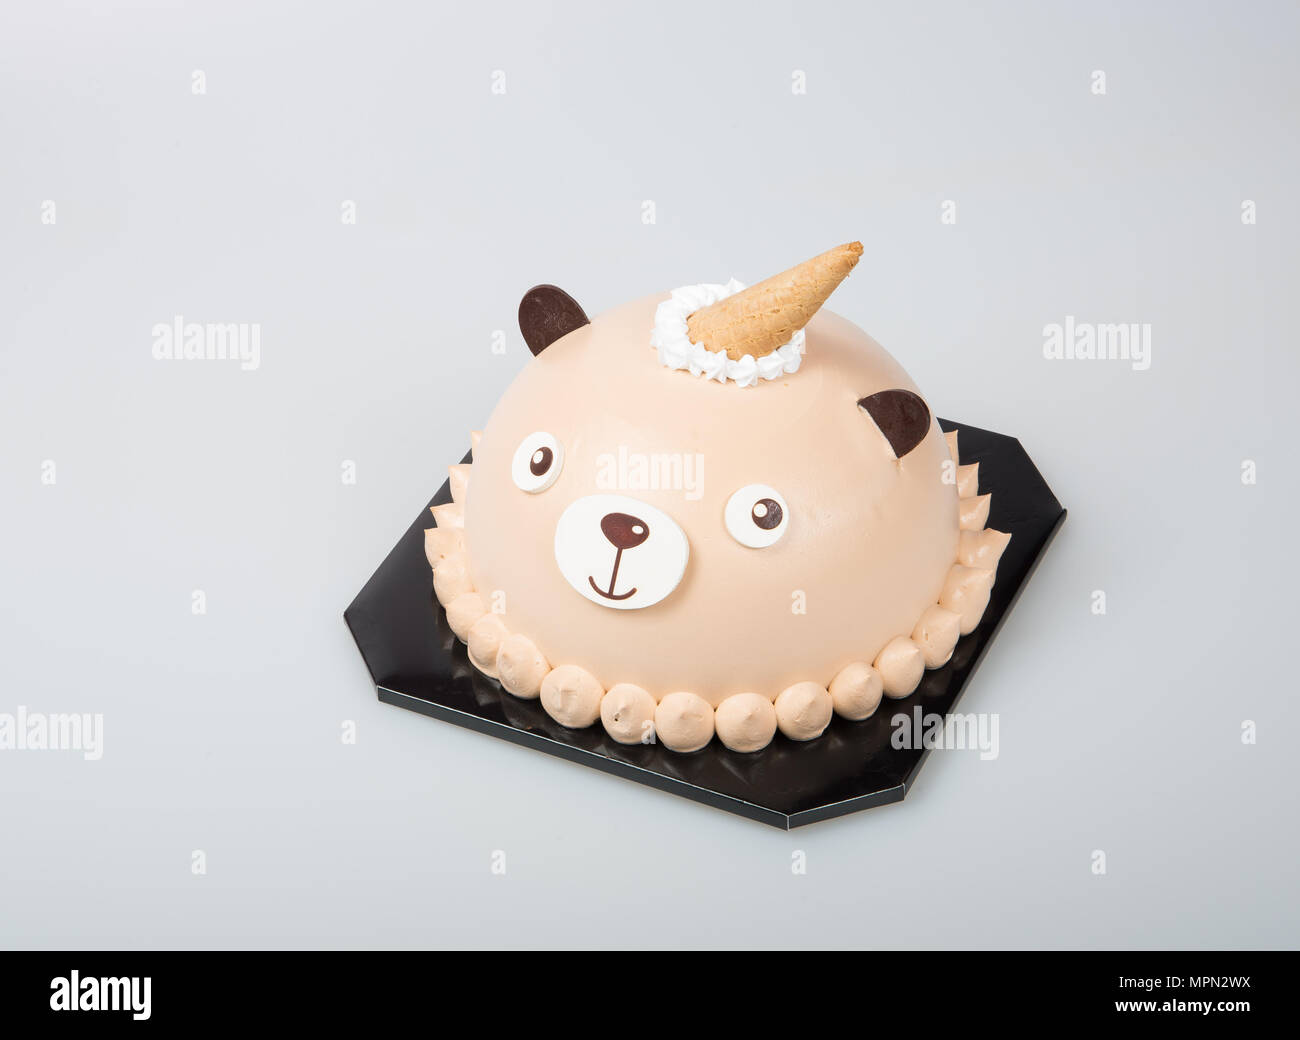 Awe Inspiring Cake Or Bear Birthday Cakes On A Background Stock Photo 186089398 Funny Birthday Cards Online Aeocydamsfinfo